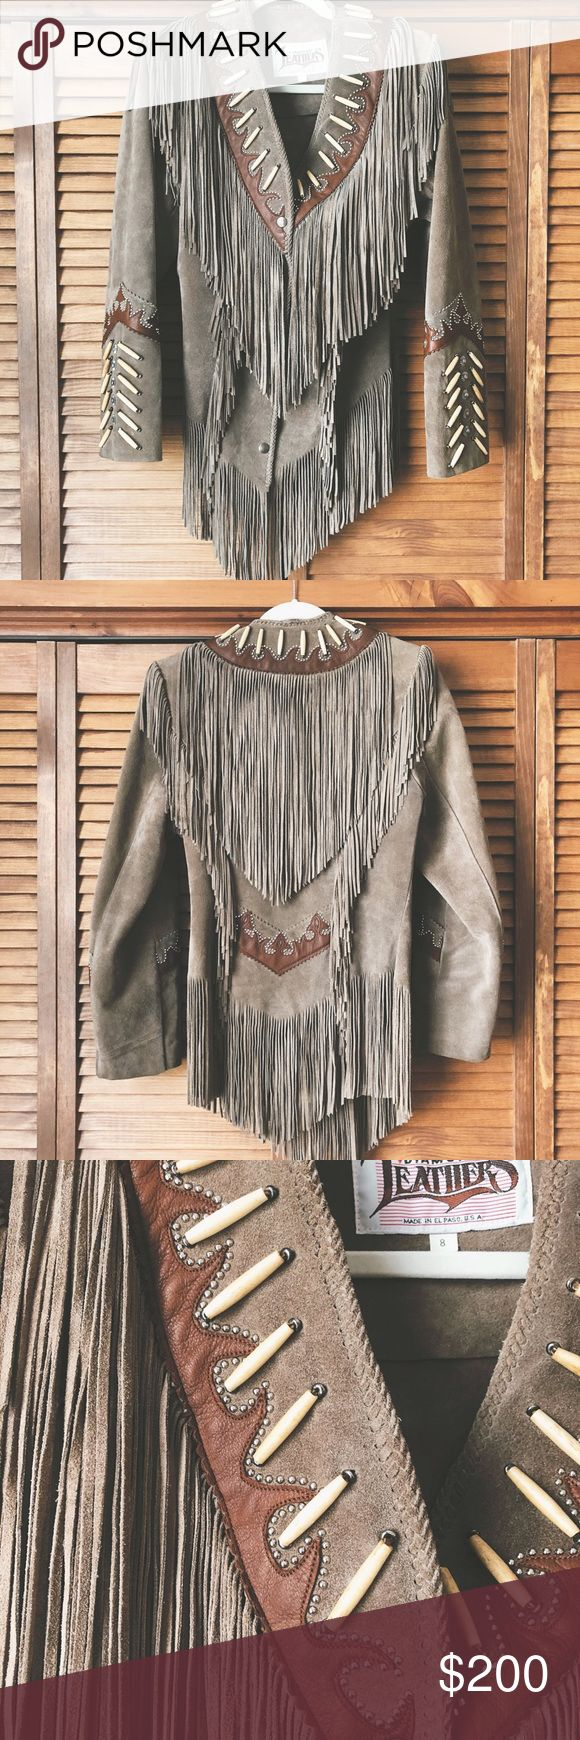 Vintage Women's Diamond Leather Jacket El Paso, TX Vintage Women's Diamond Leather Jacket of El Paso, Texas in Deep Taupe, size 8. Never worn and in perfect condition. This gal has lived in a garment bag for all her life. Someone show her a good time! Jackets & Coats